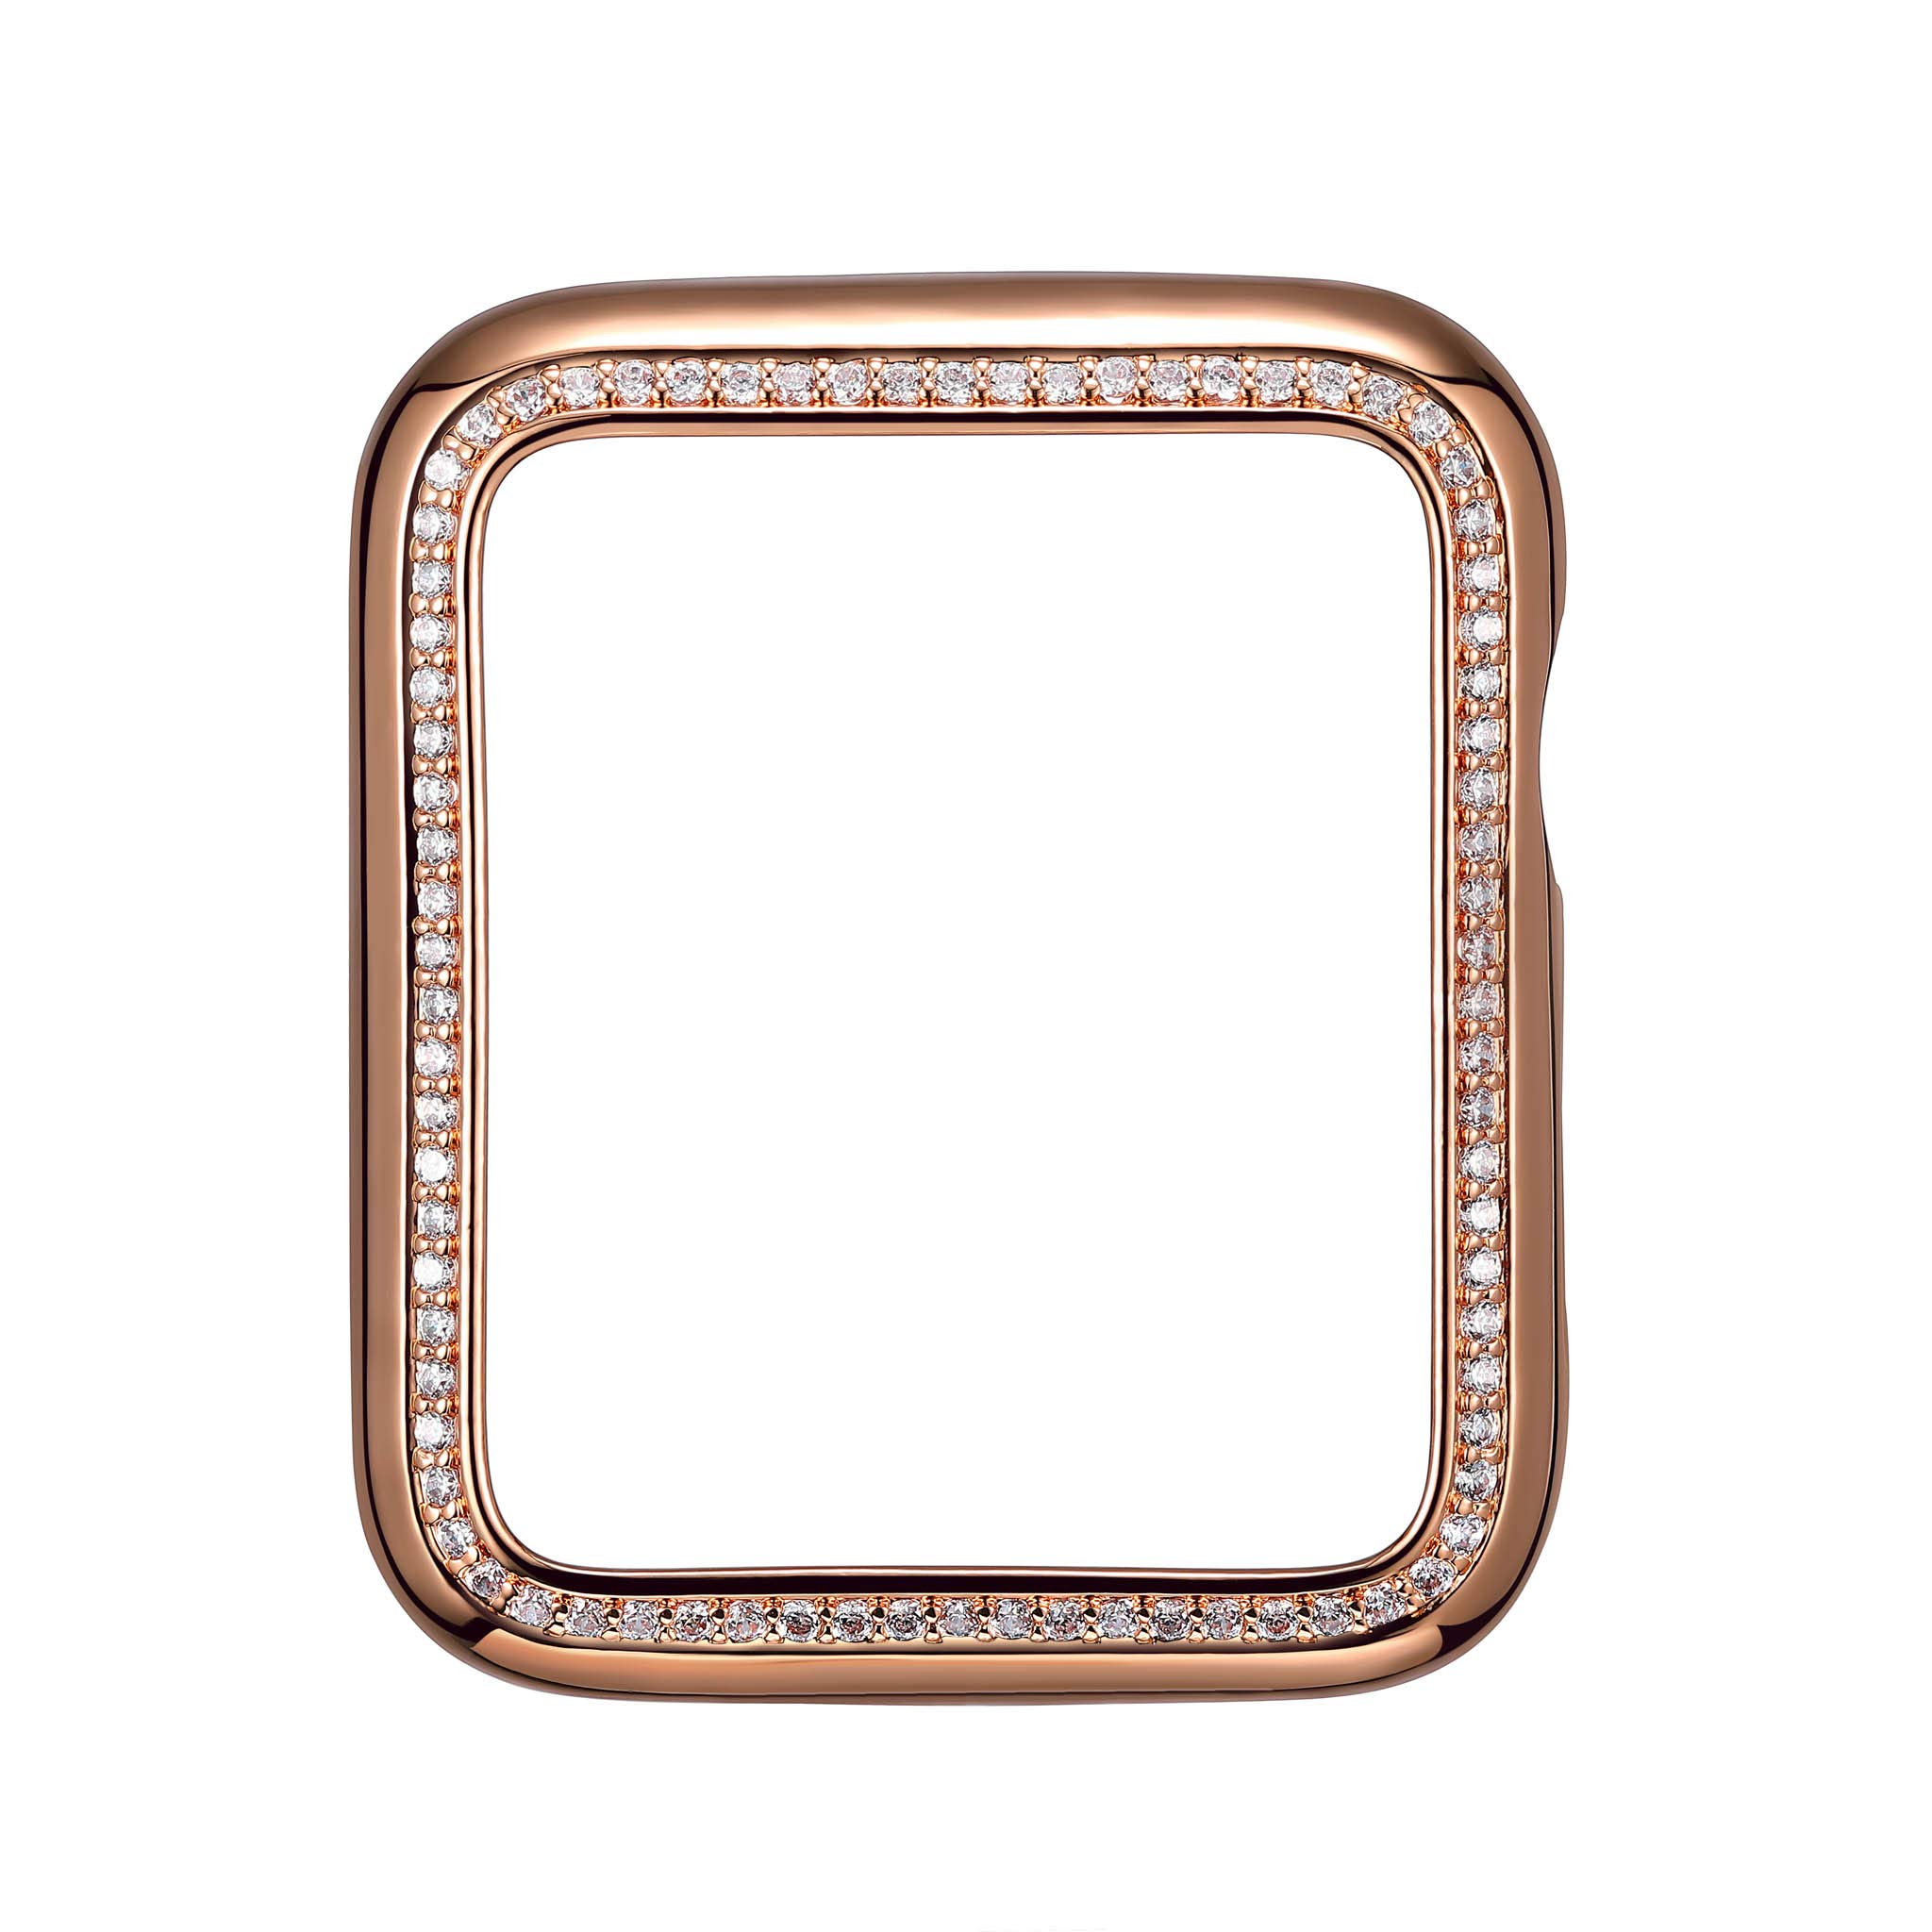 SKYB 14K Rose Gold Plated Jewelry-Style Apple Watch Case with Cubic Zirconia CZ Border - Large (Fits 42mm iWatch)